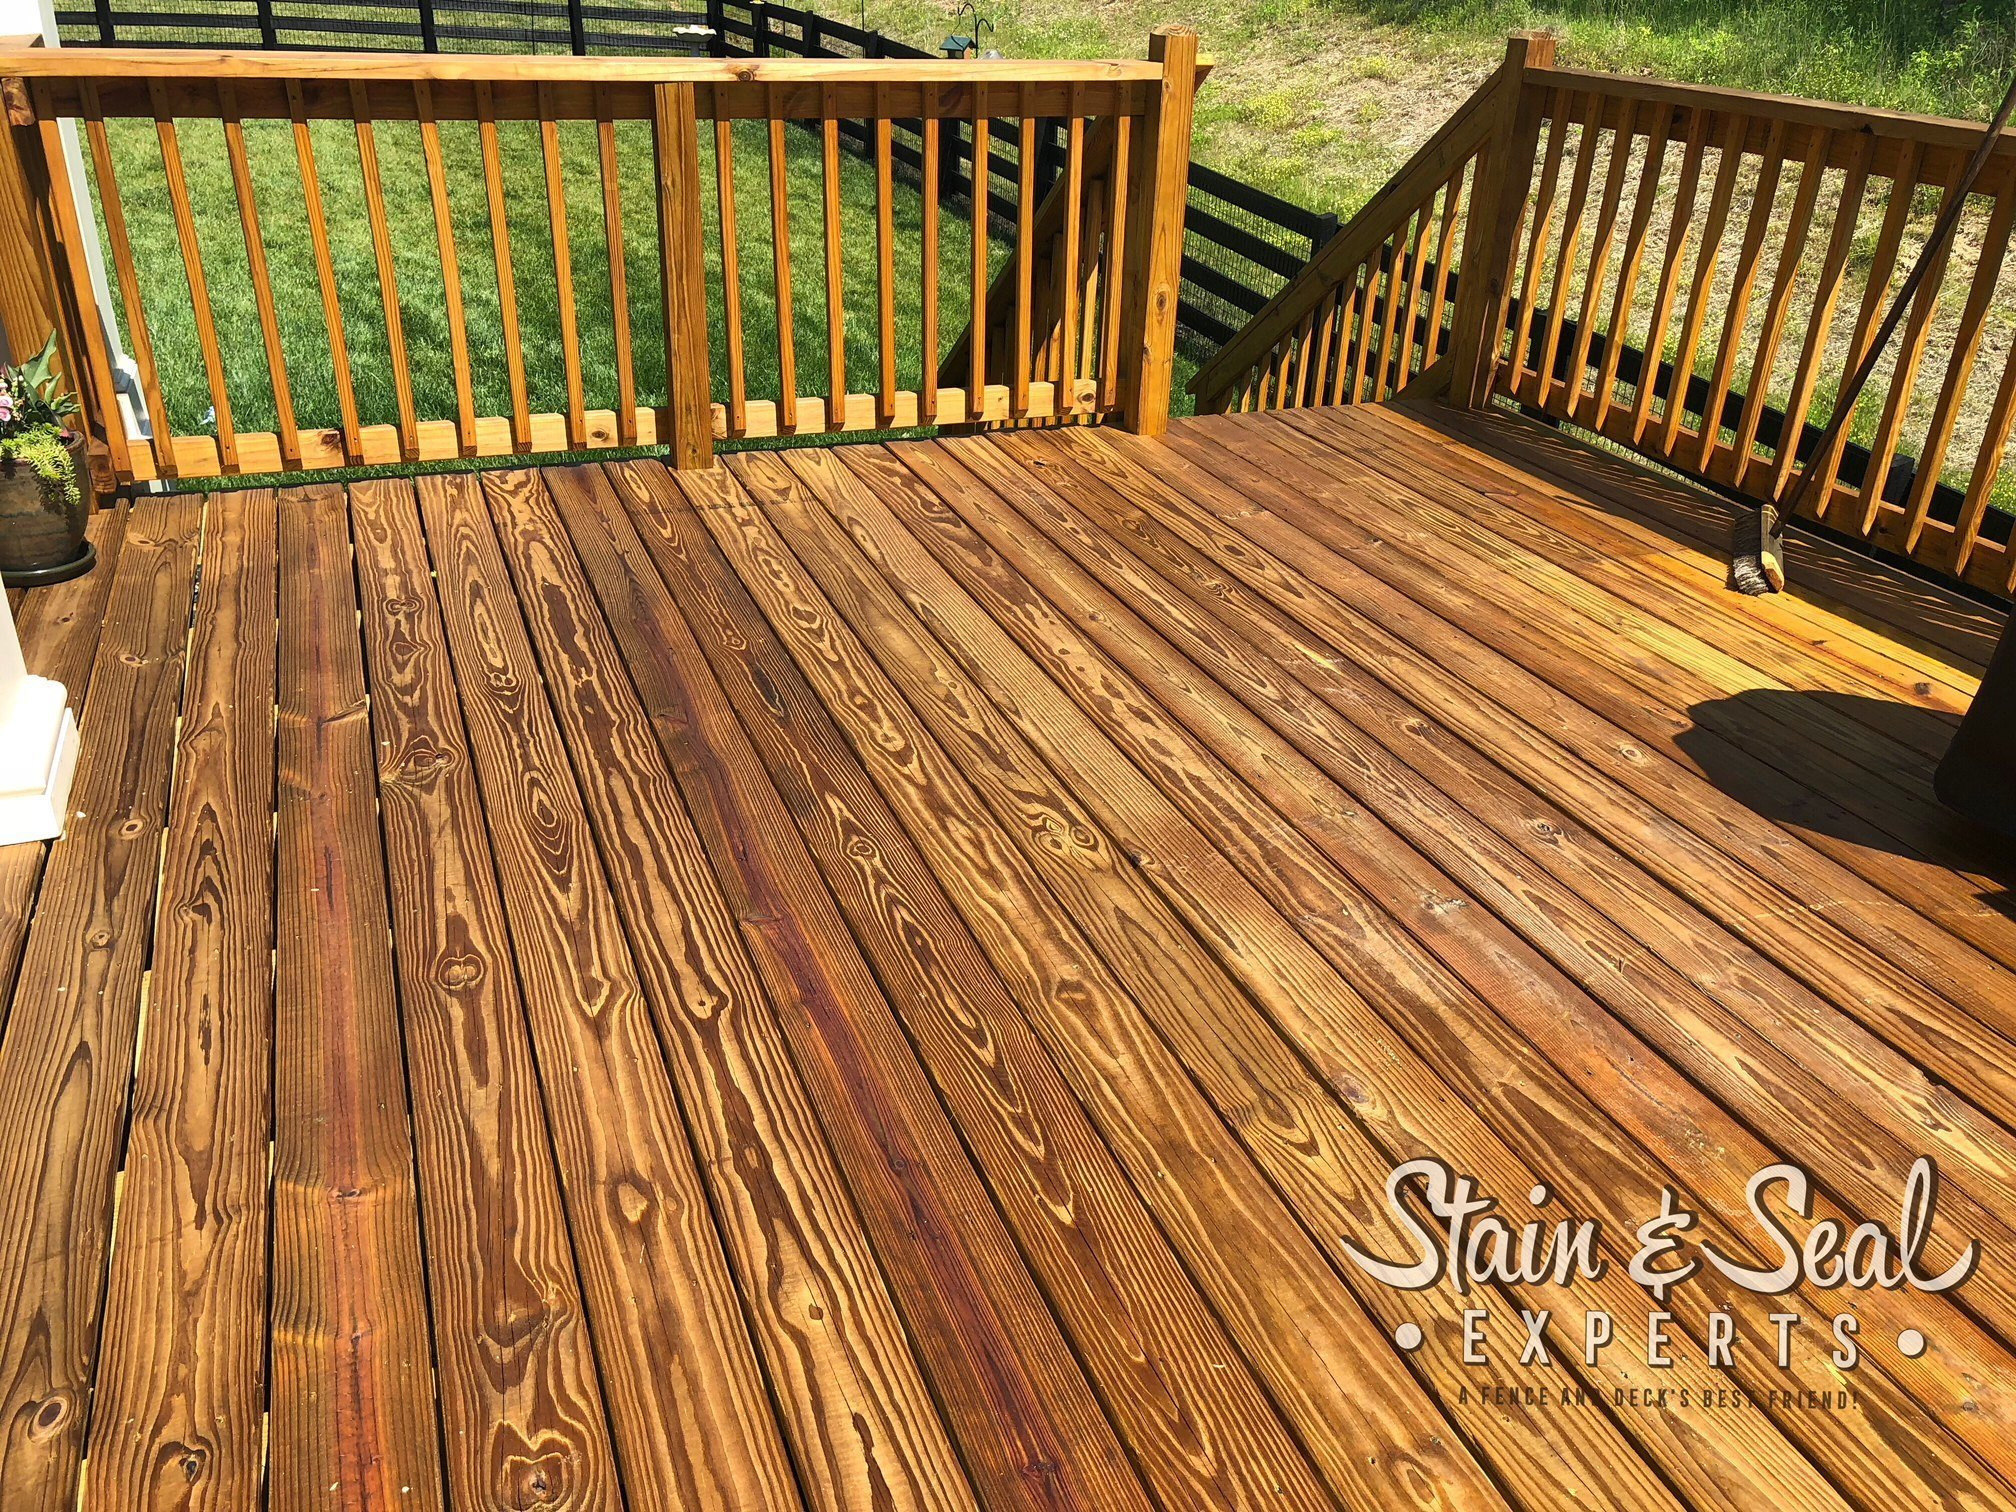 Semi Transpa Deck Stain Sealer 5 Gallons Free Shipping